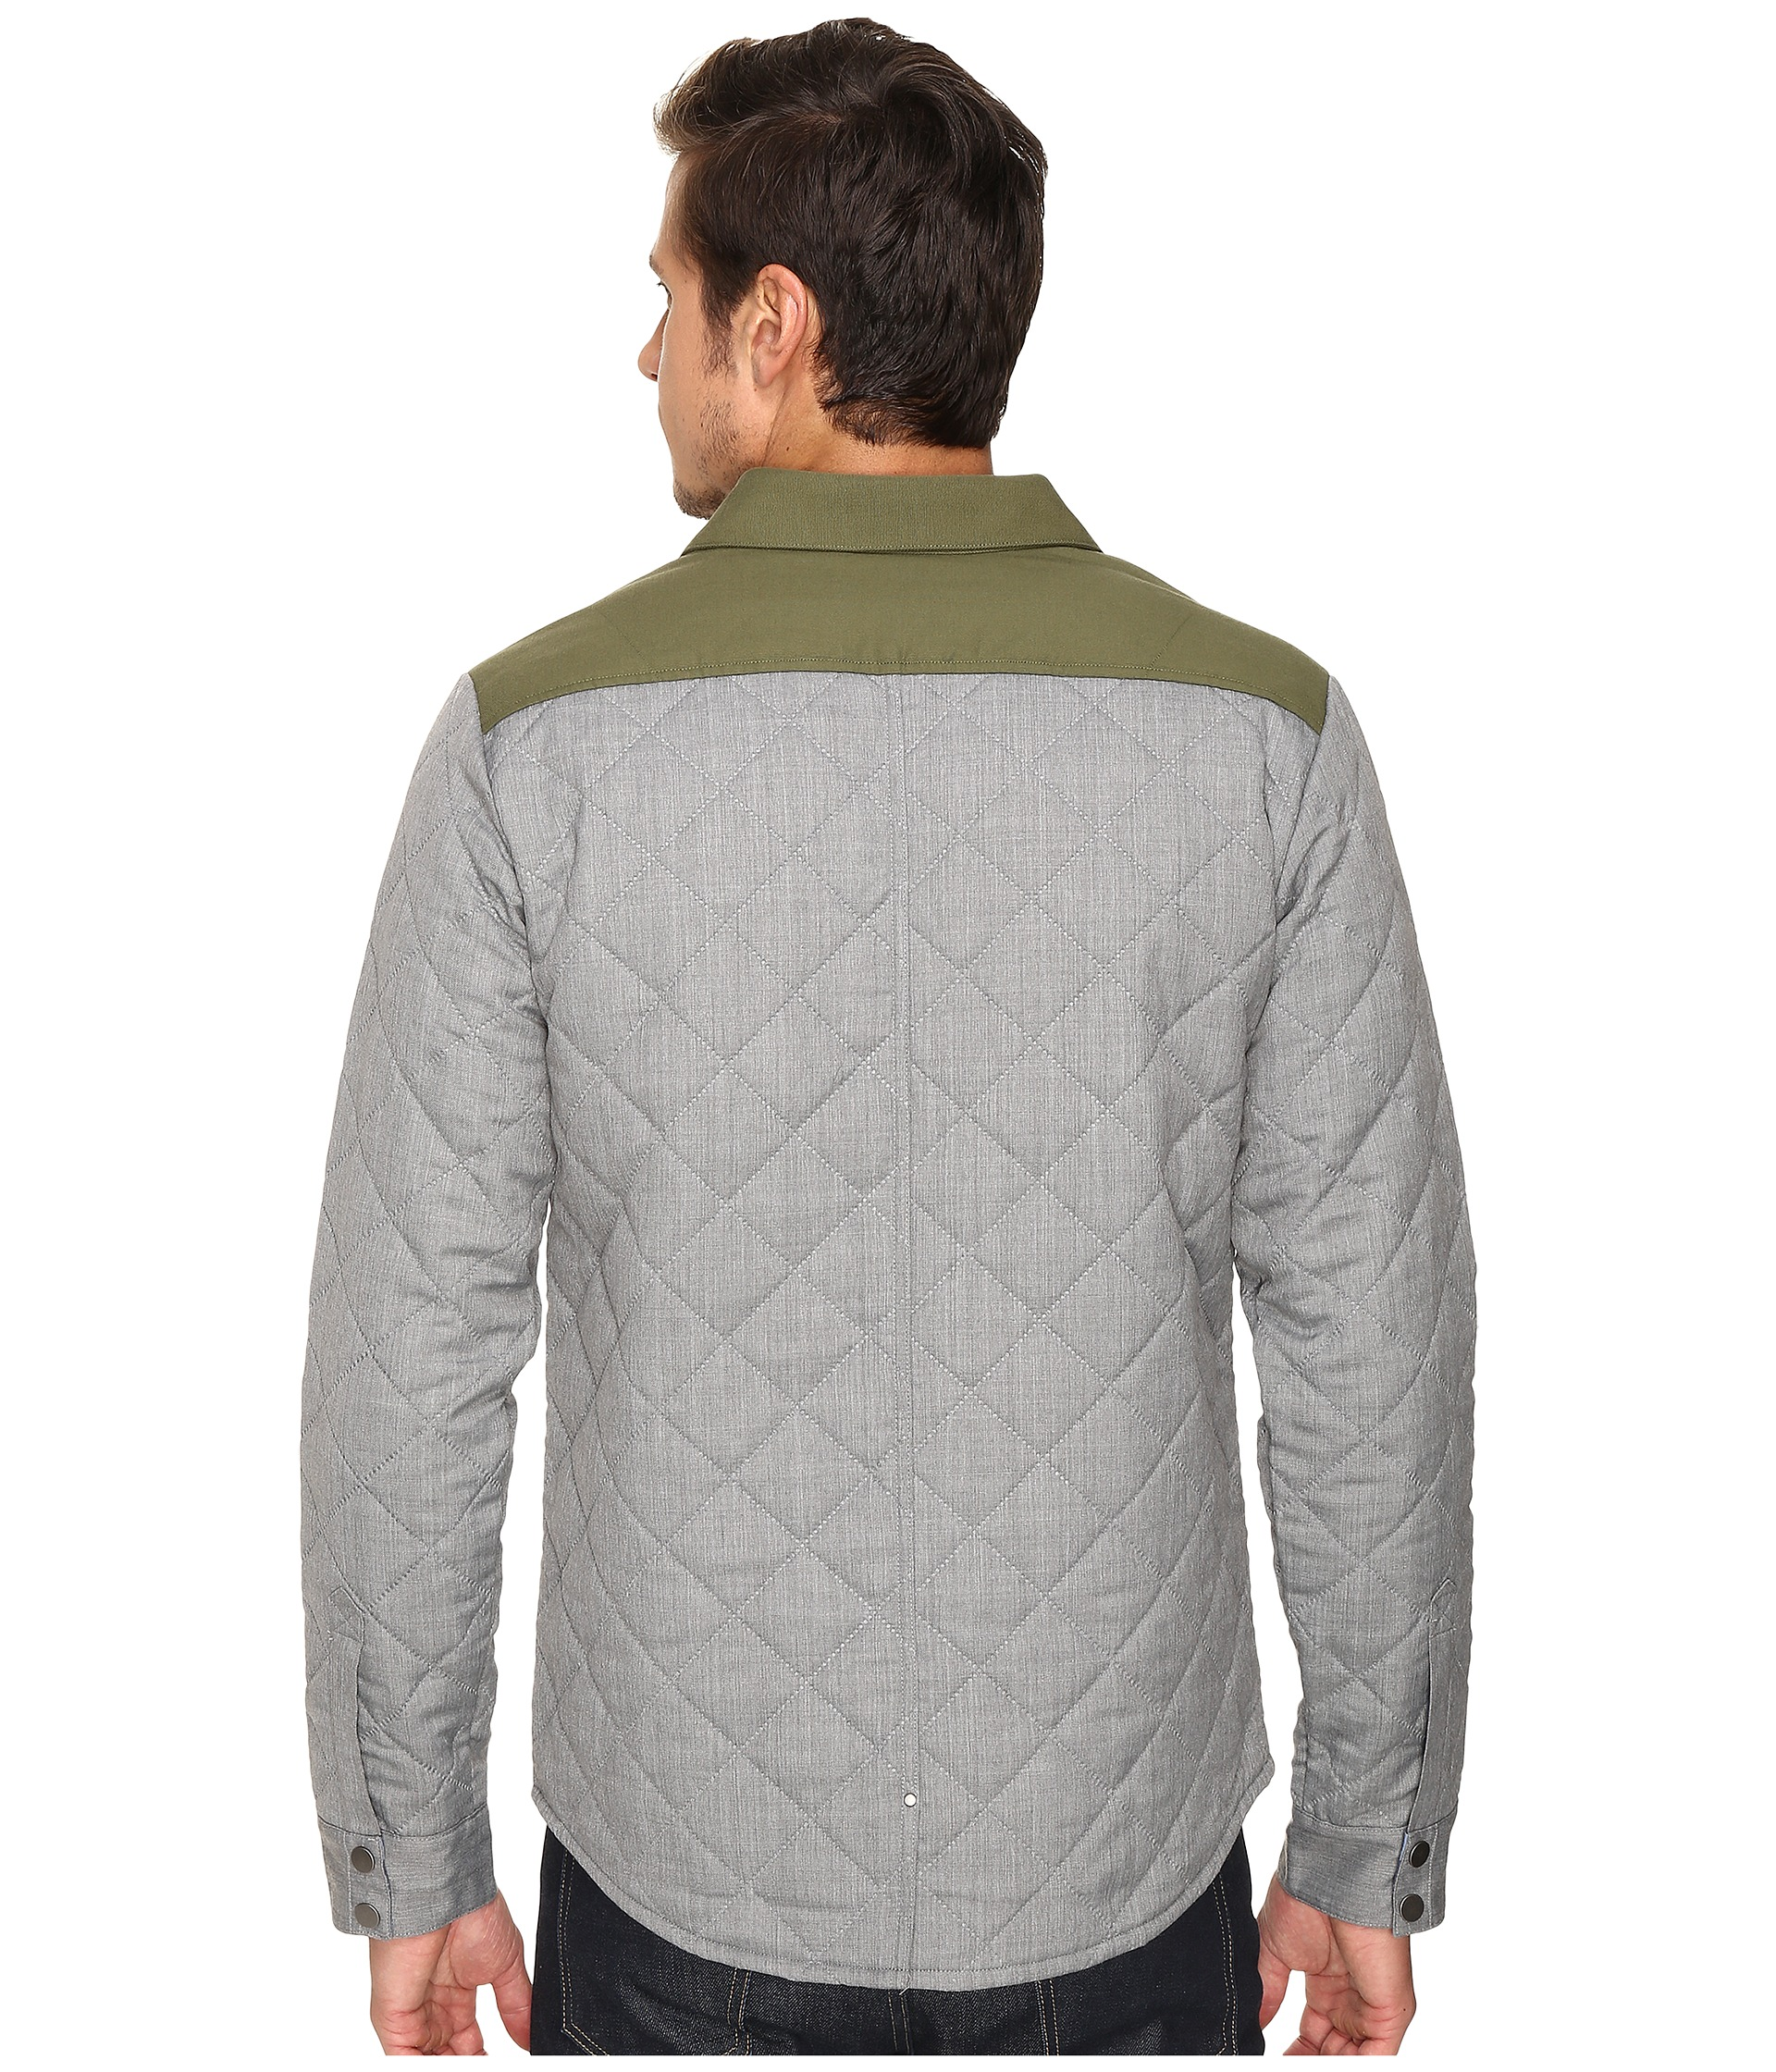 Smartwool Summit County Quilted Shirt Jacket Light Gray